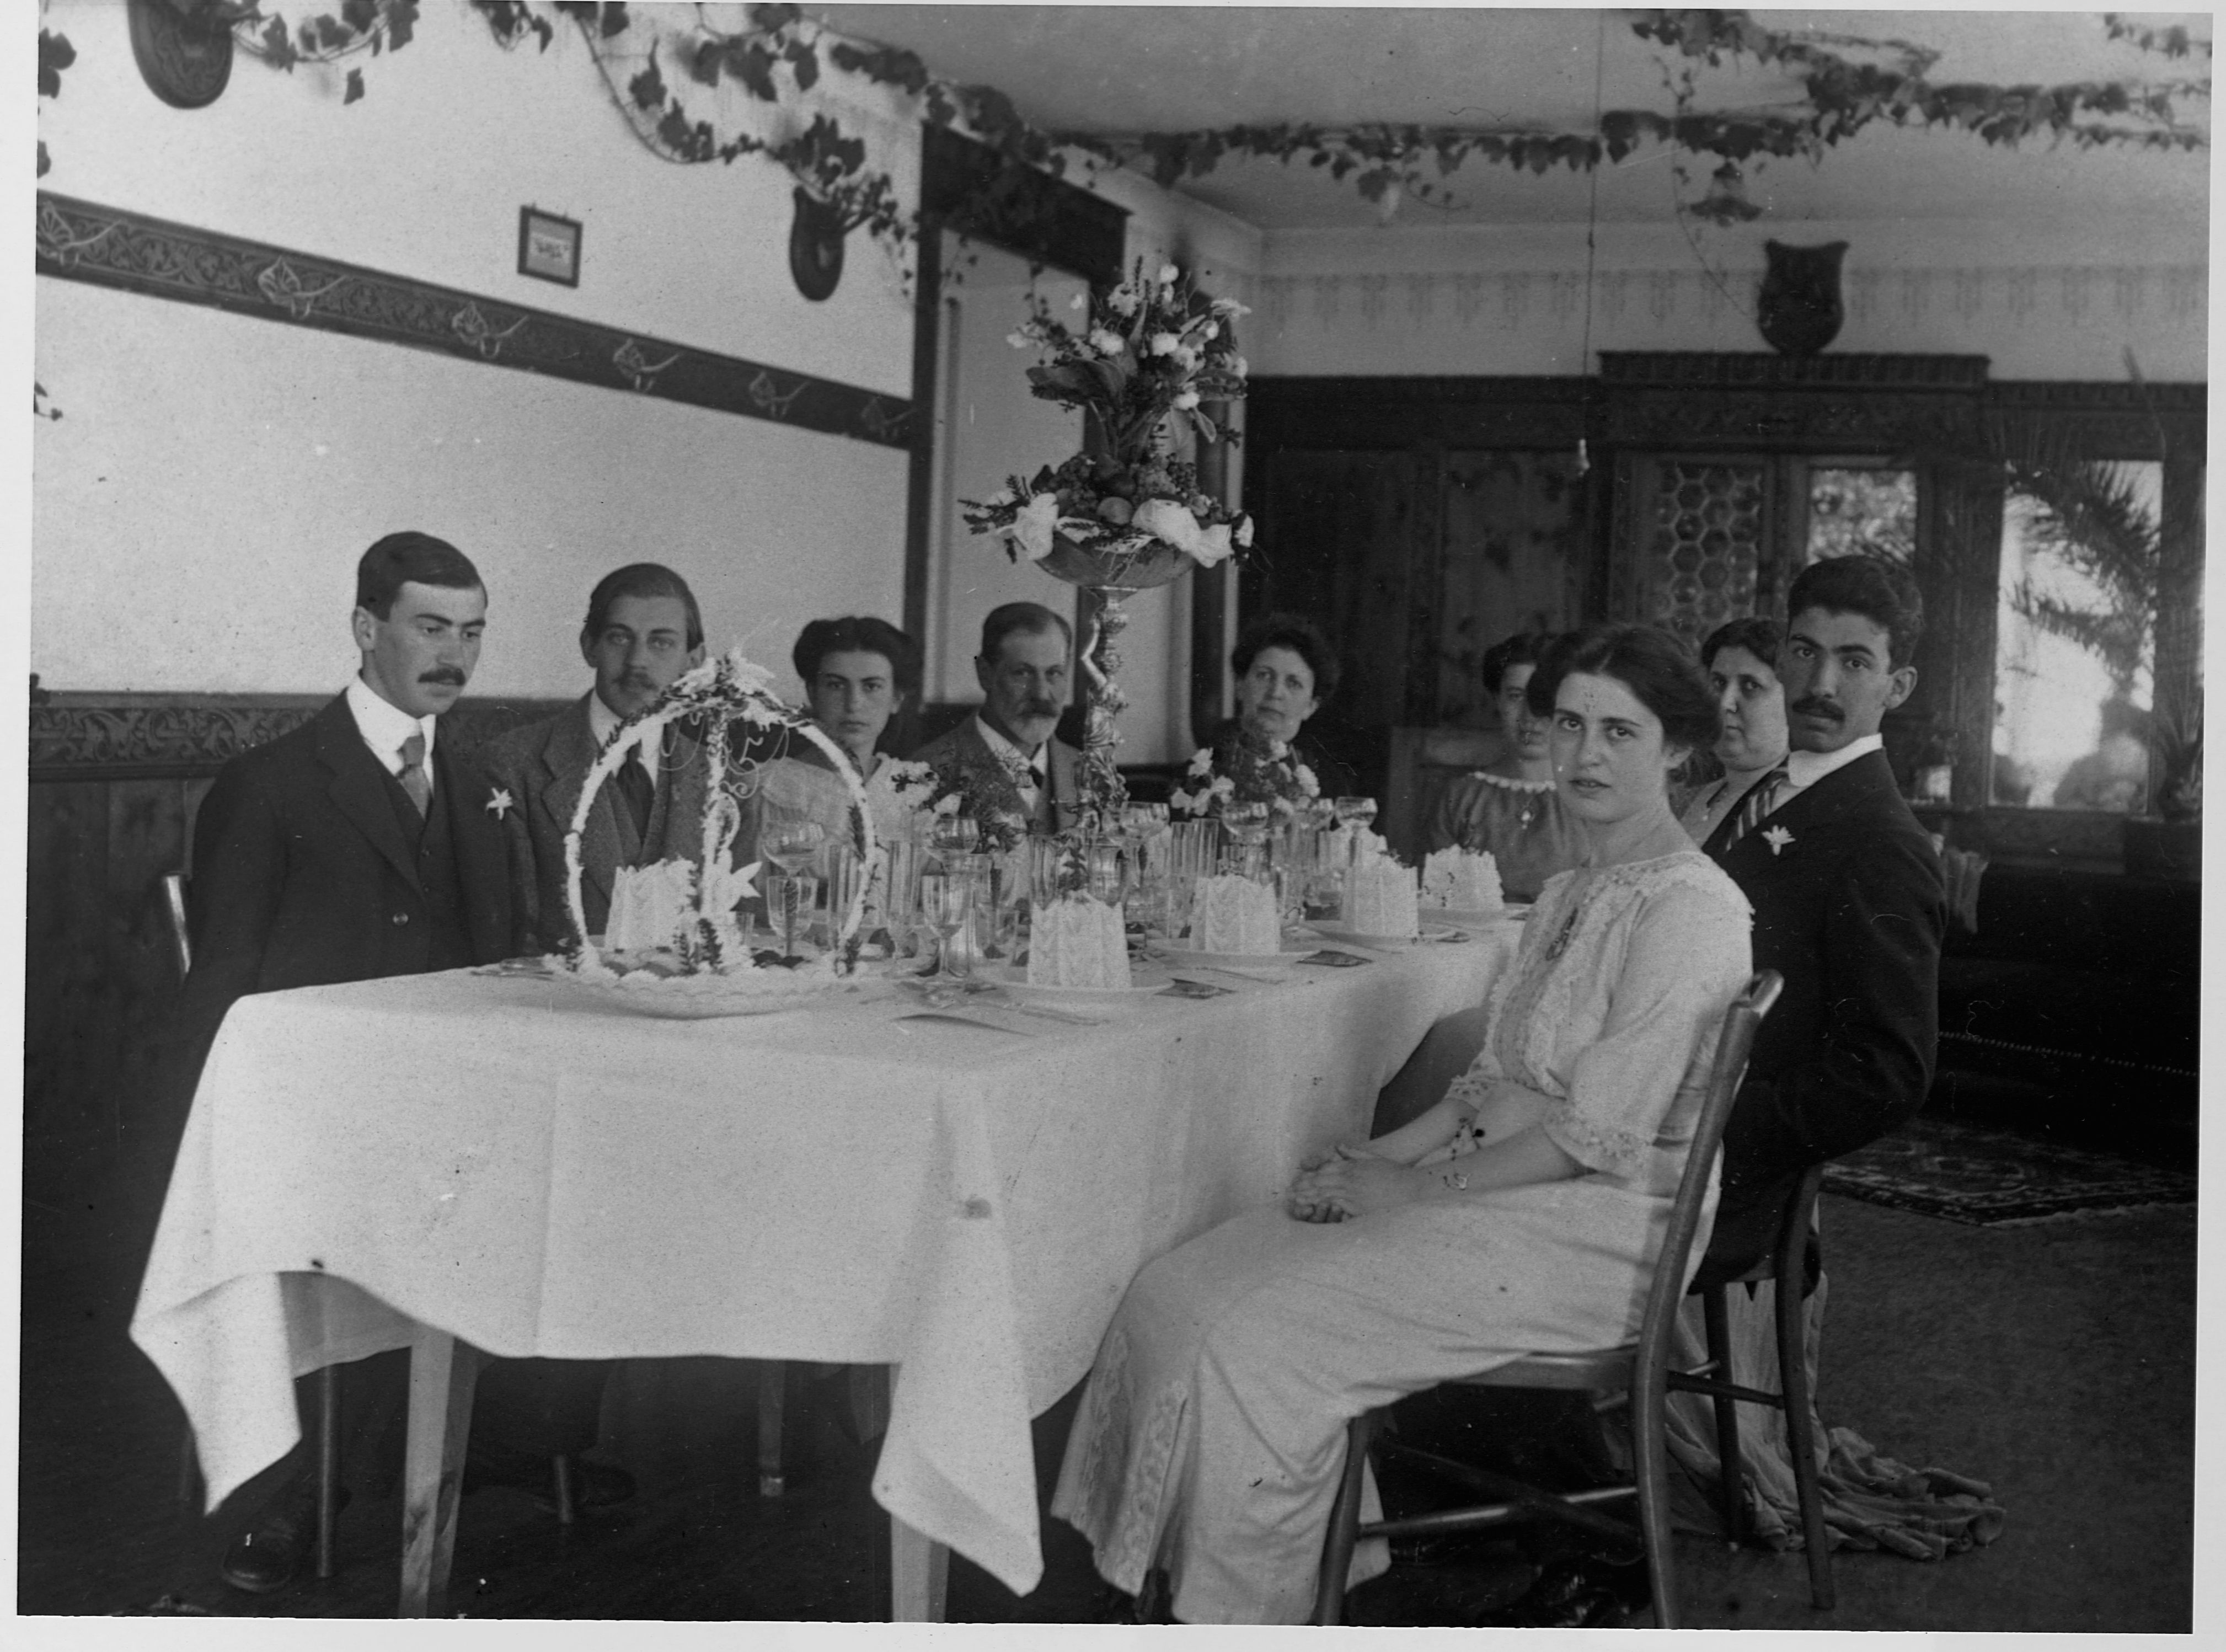 Sigmund Freud Dining with Family